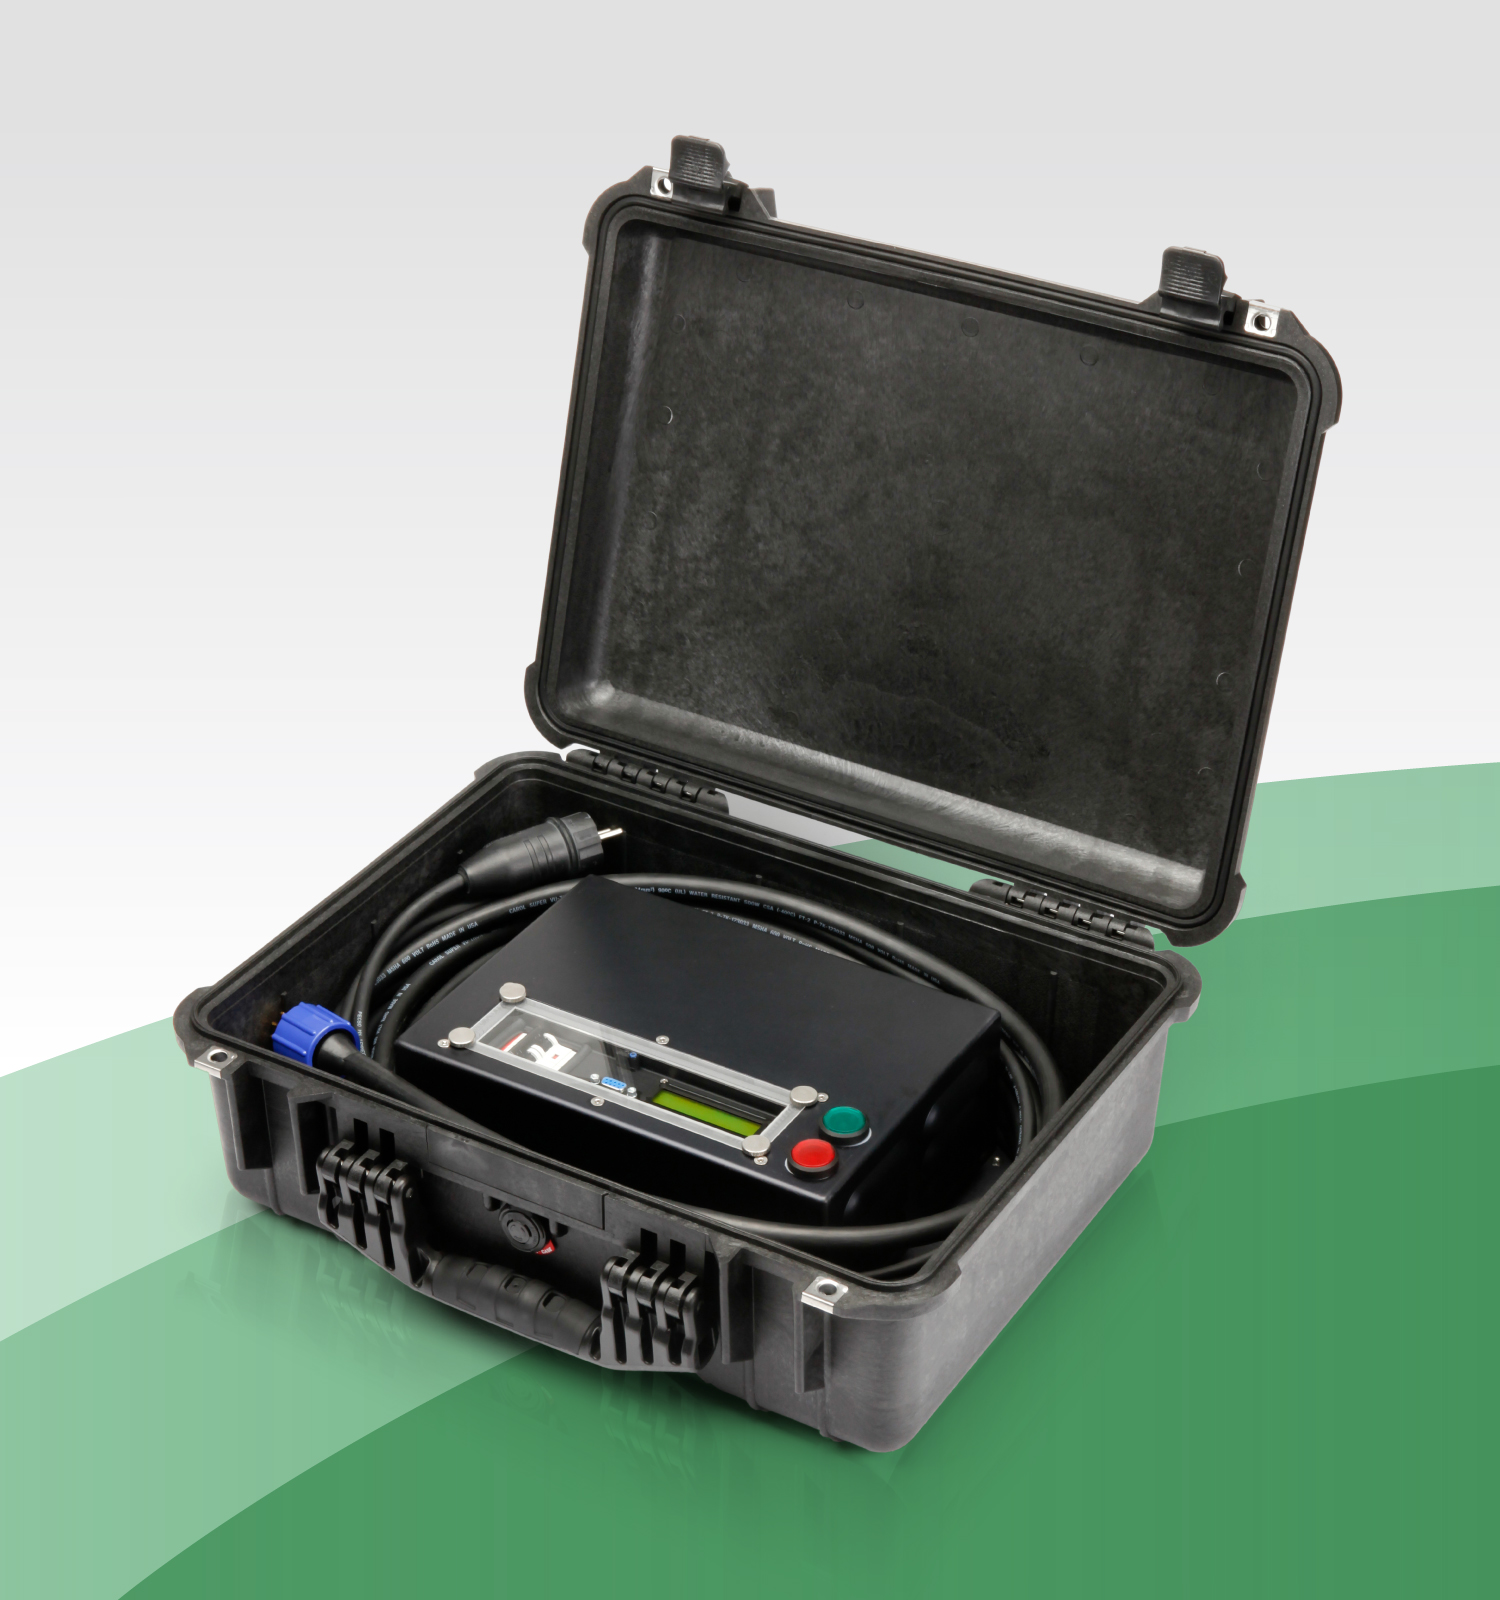 reap-systems-battery-charger.jpg